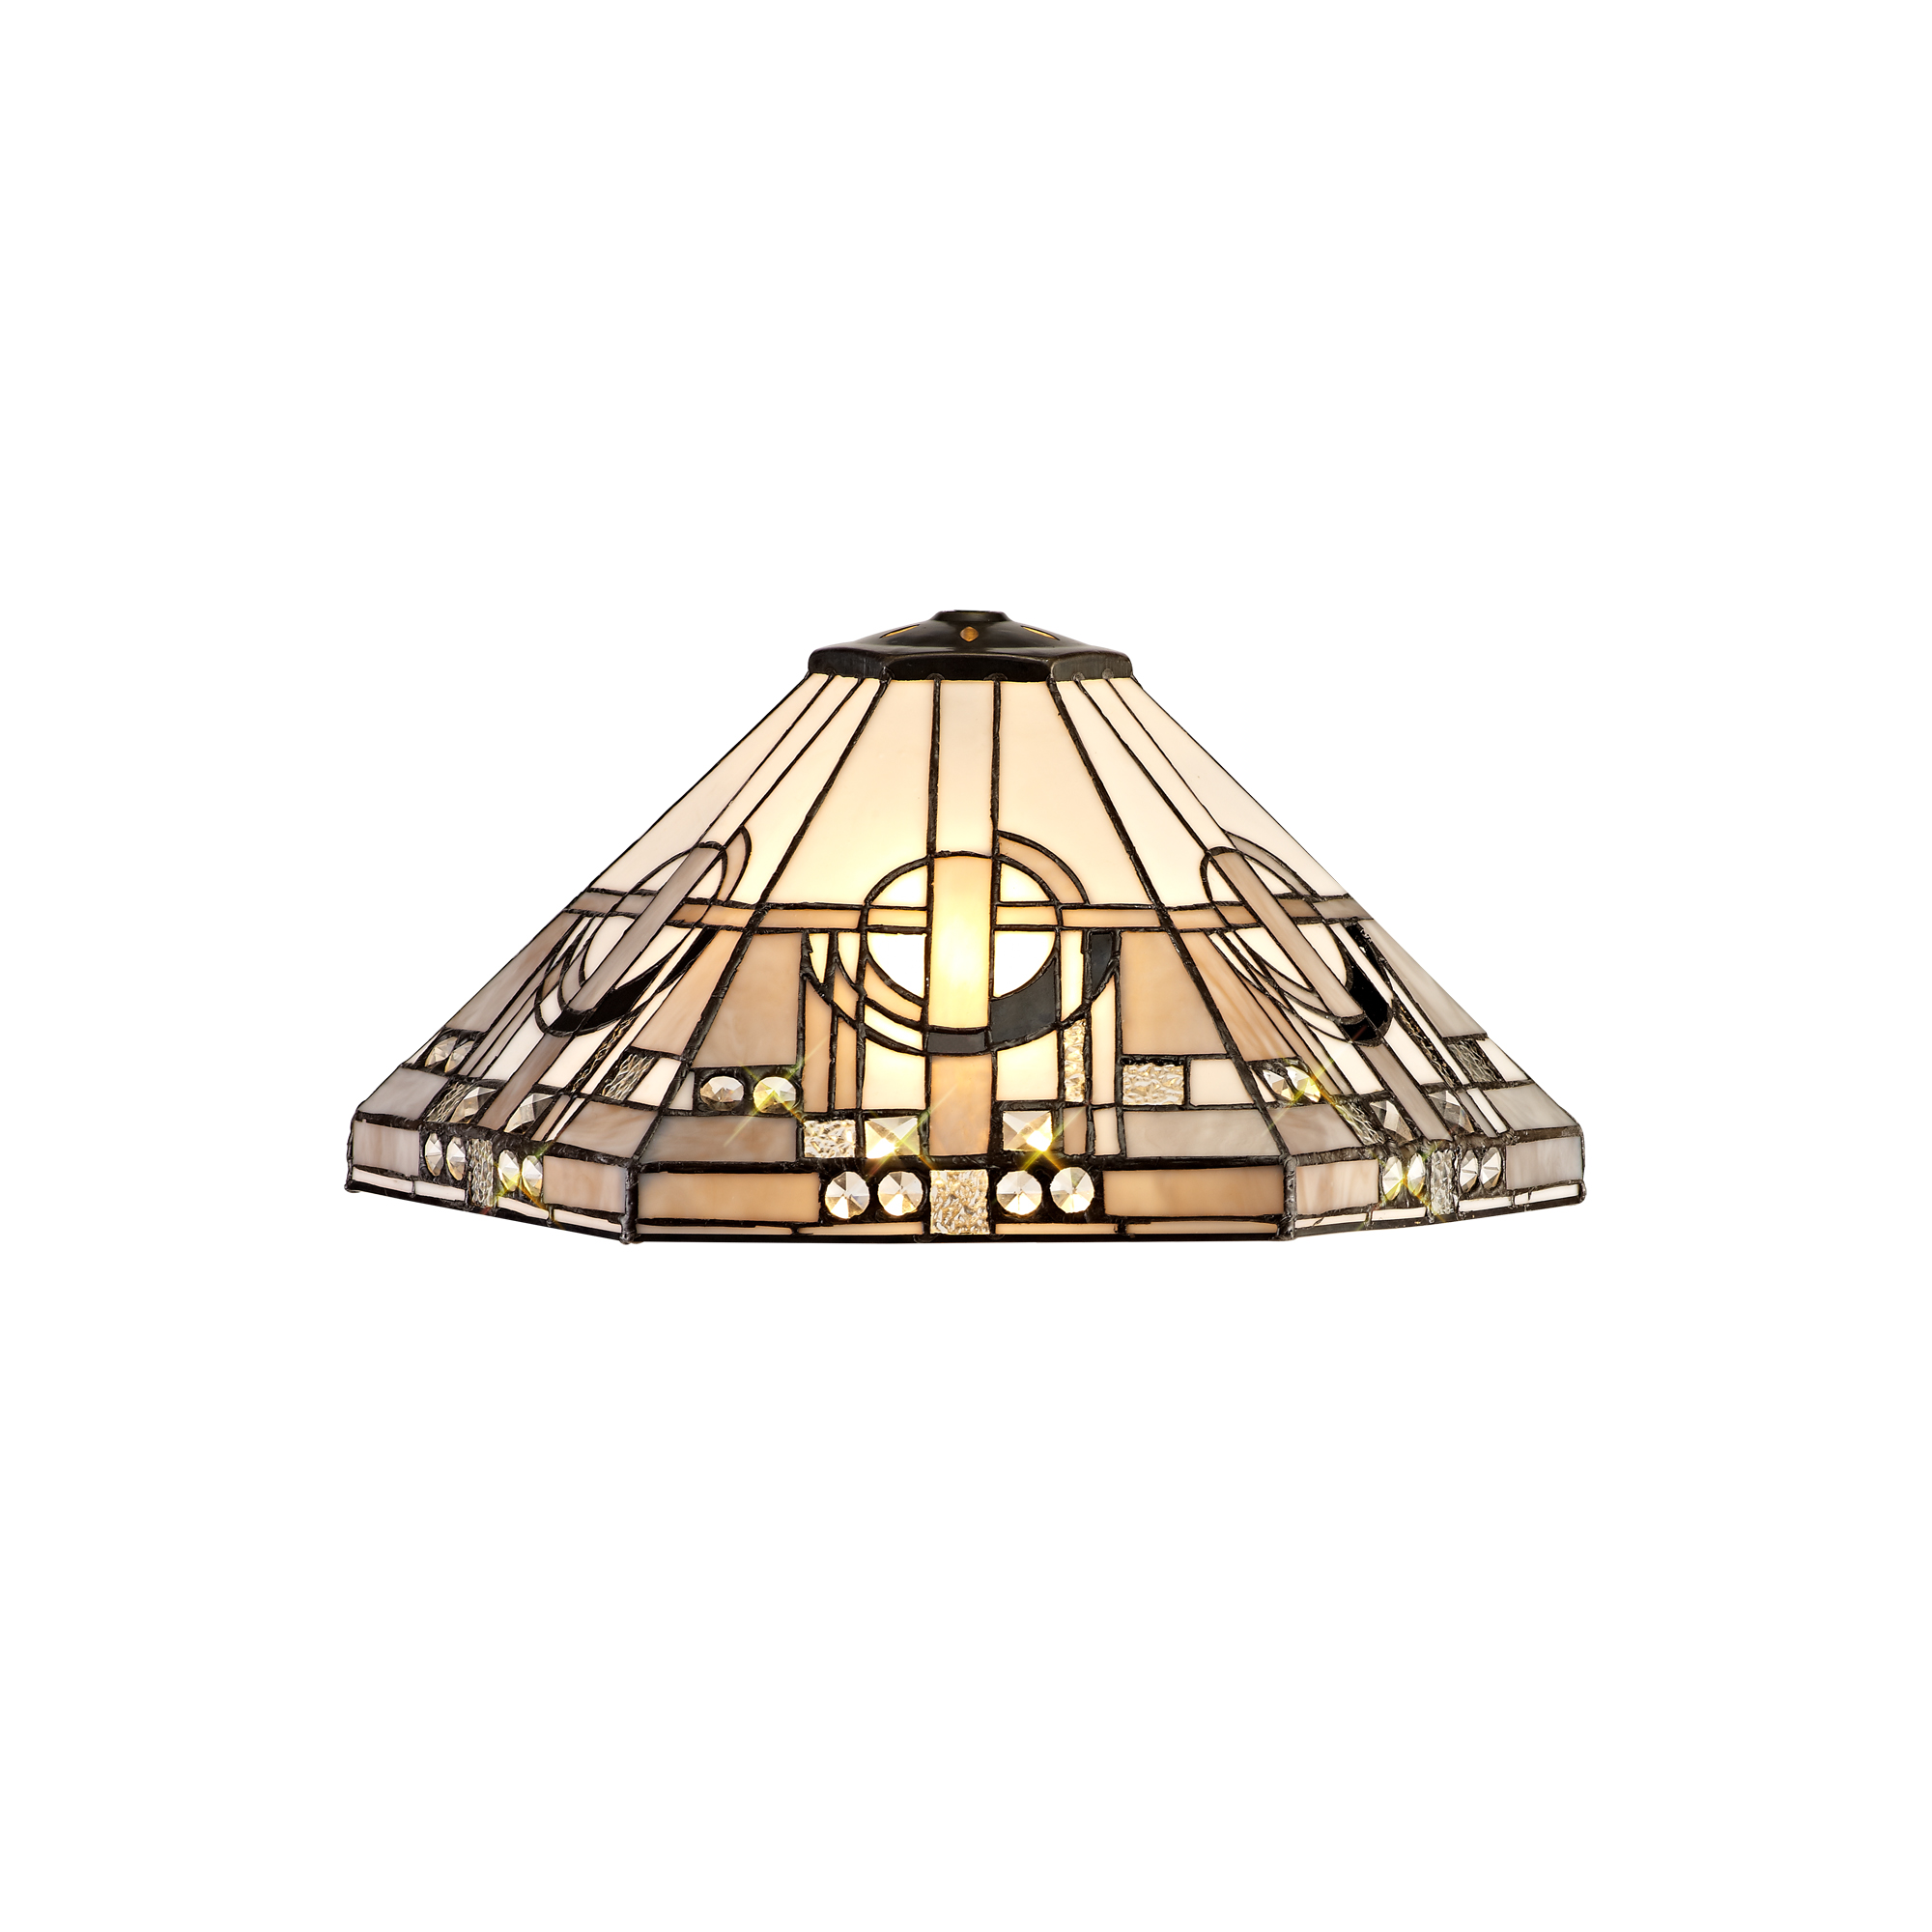 1 Light Downlighter Pendant E27 With 40cm Tiffany Shade, White/Grey/Black/Clear Crystal/Aged Antique Brass